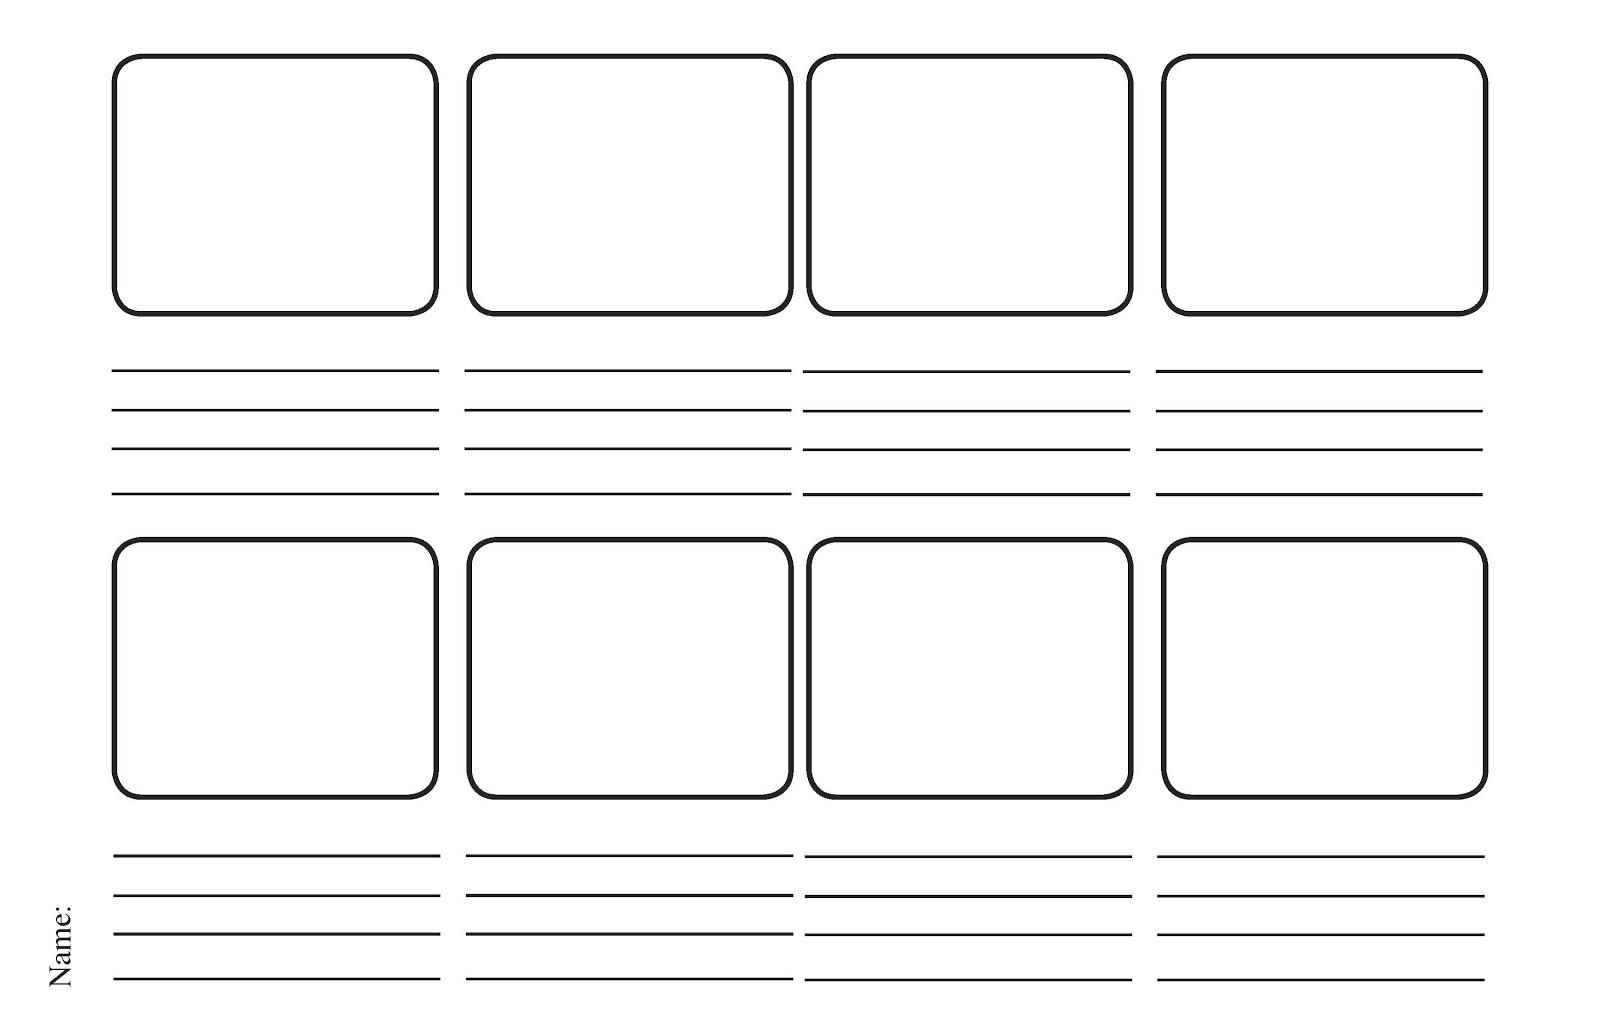 film storyboard template word - art and design film october 2012